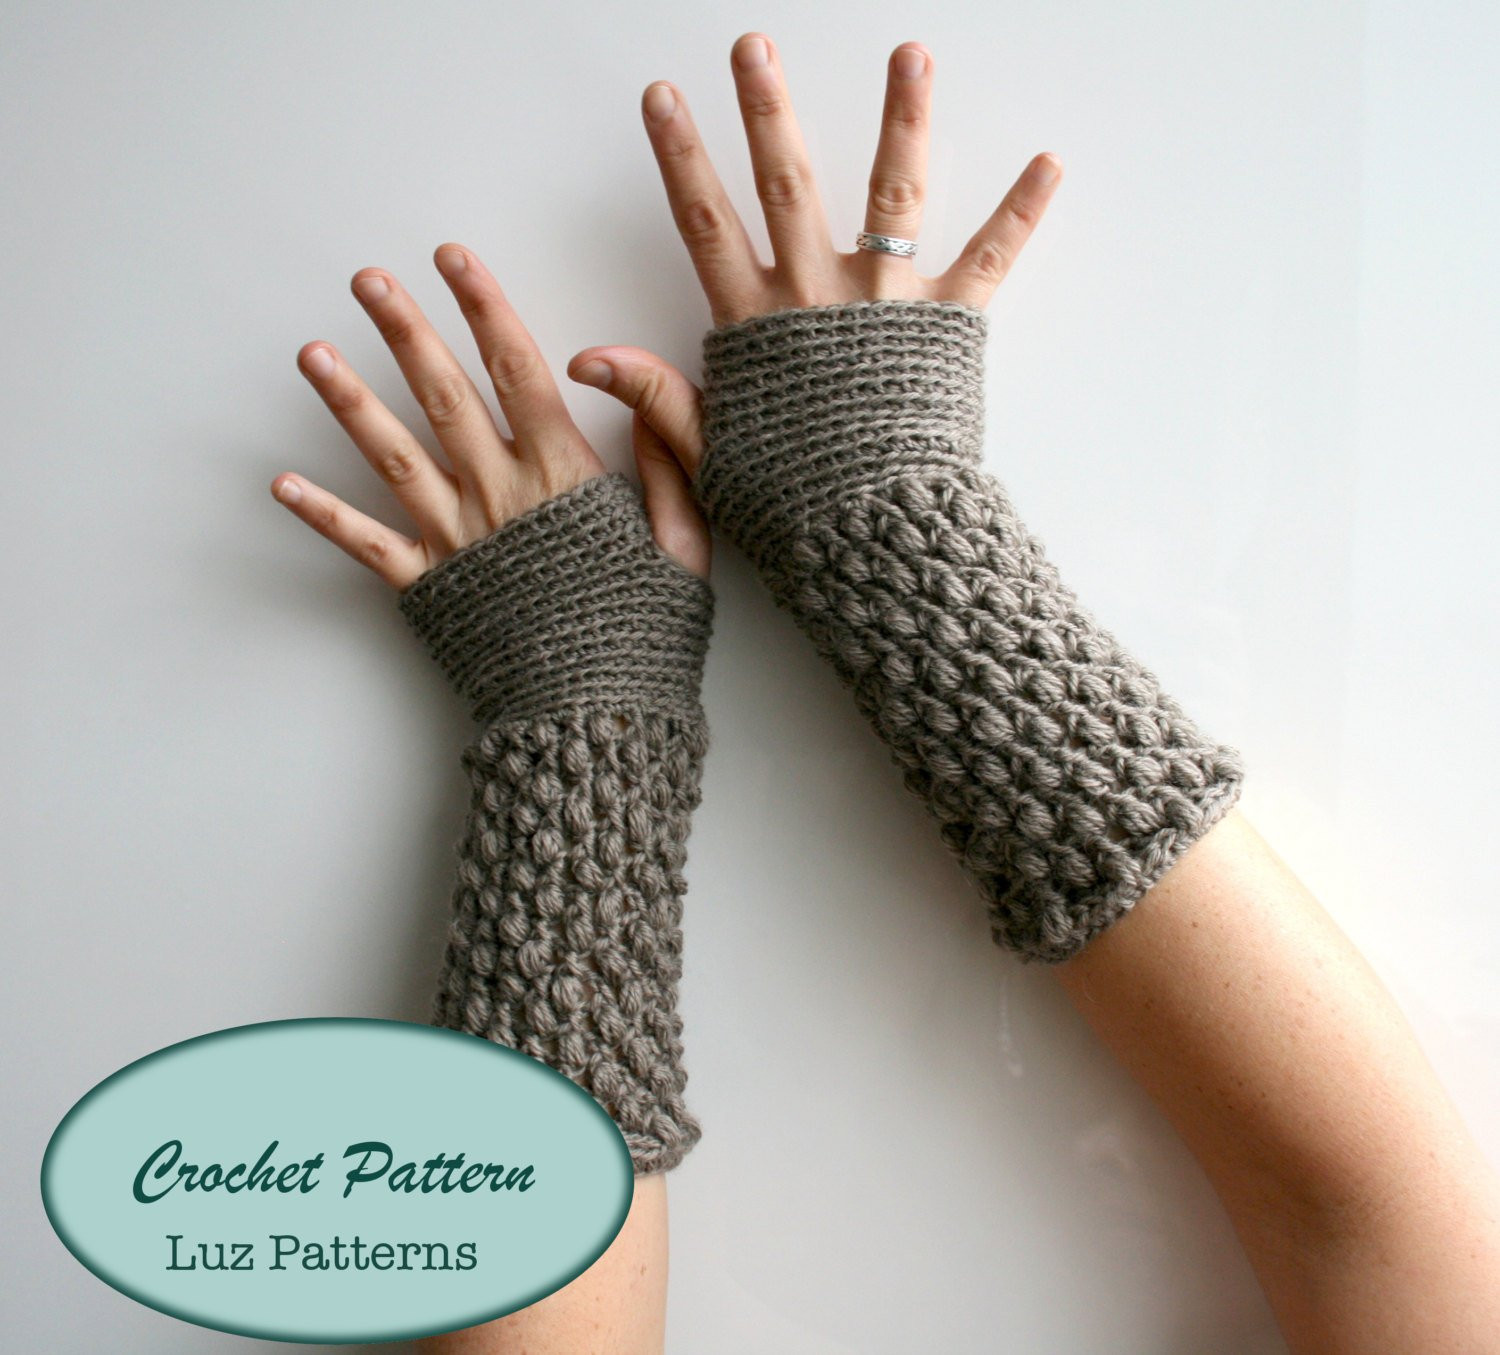 Crochet Gloves Inspirational Crochet Patterns Girl and Women Fingerless Glove Pattern Of Amazing 45 Ideas Crochet Gloves